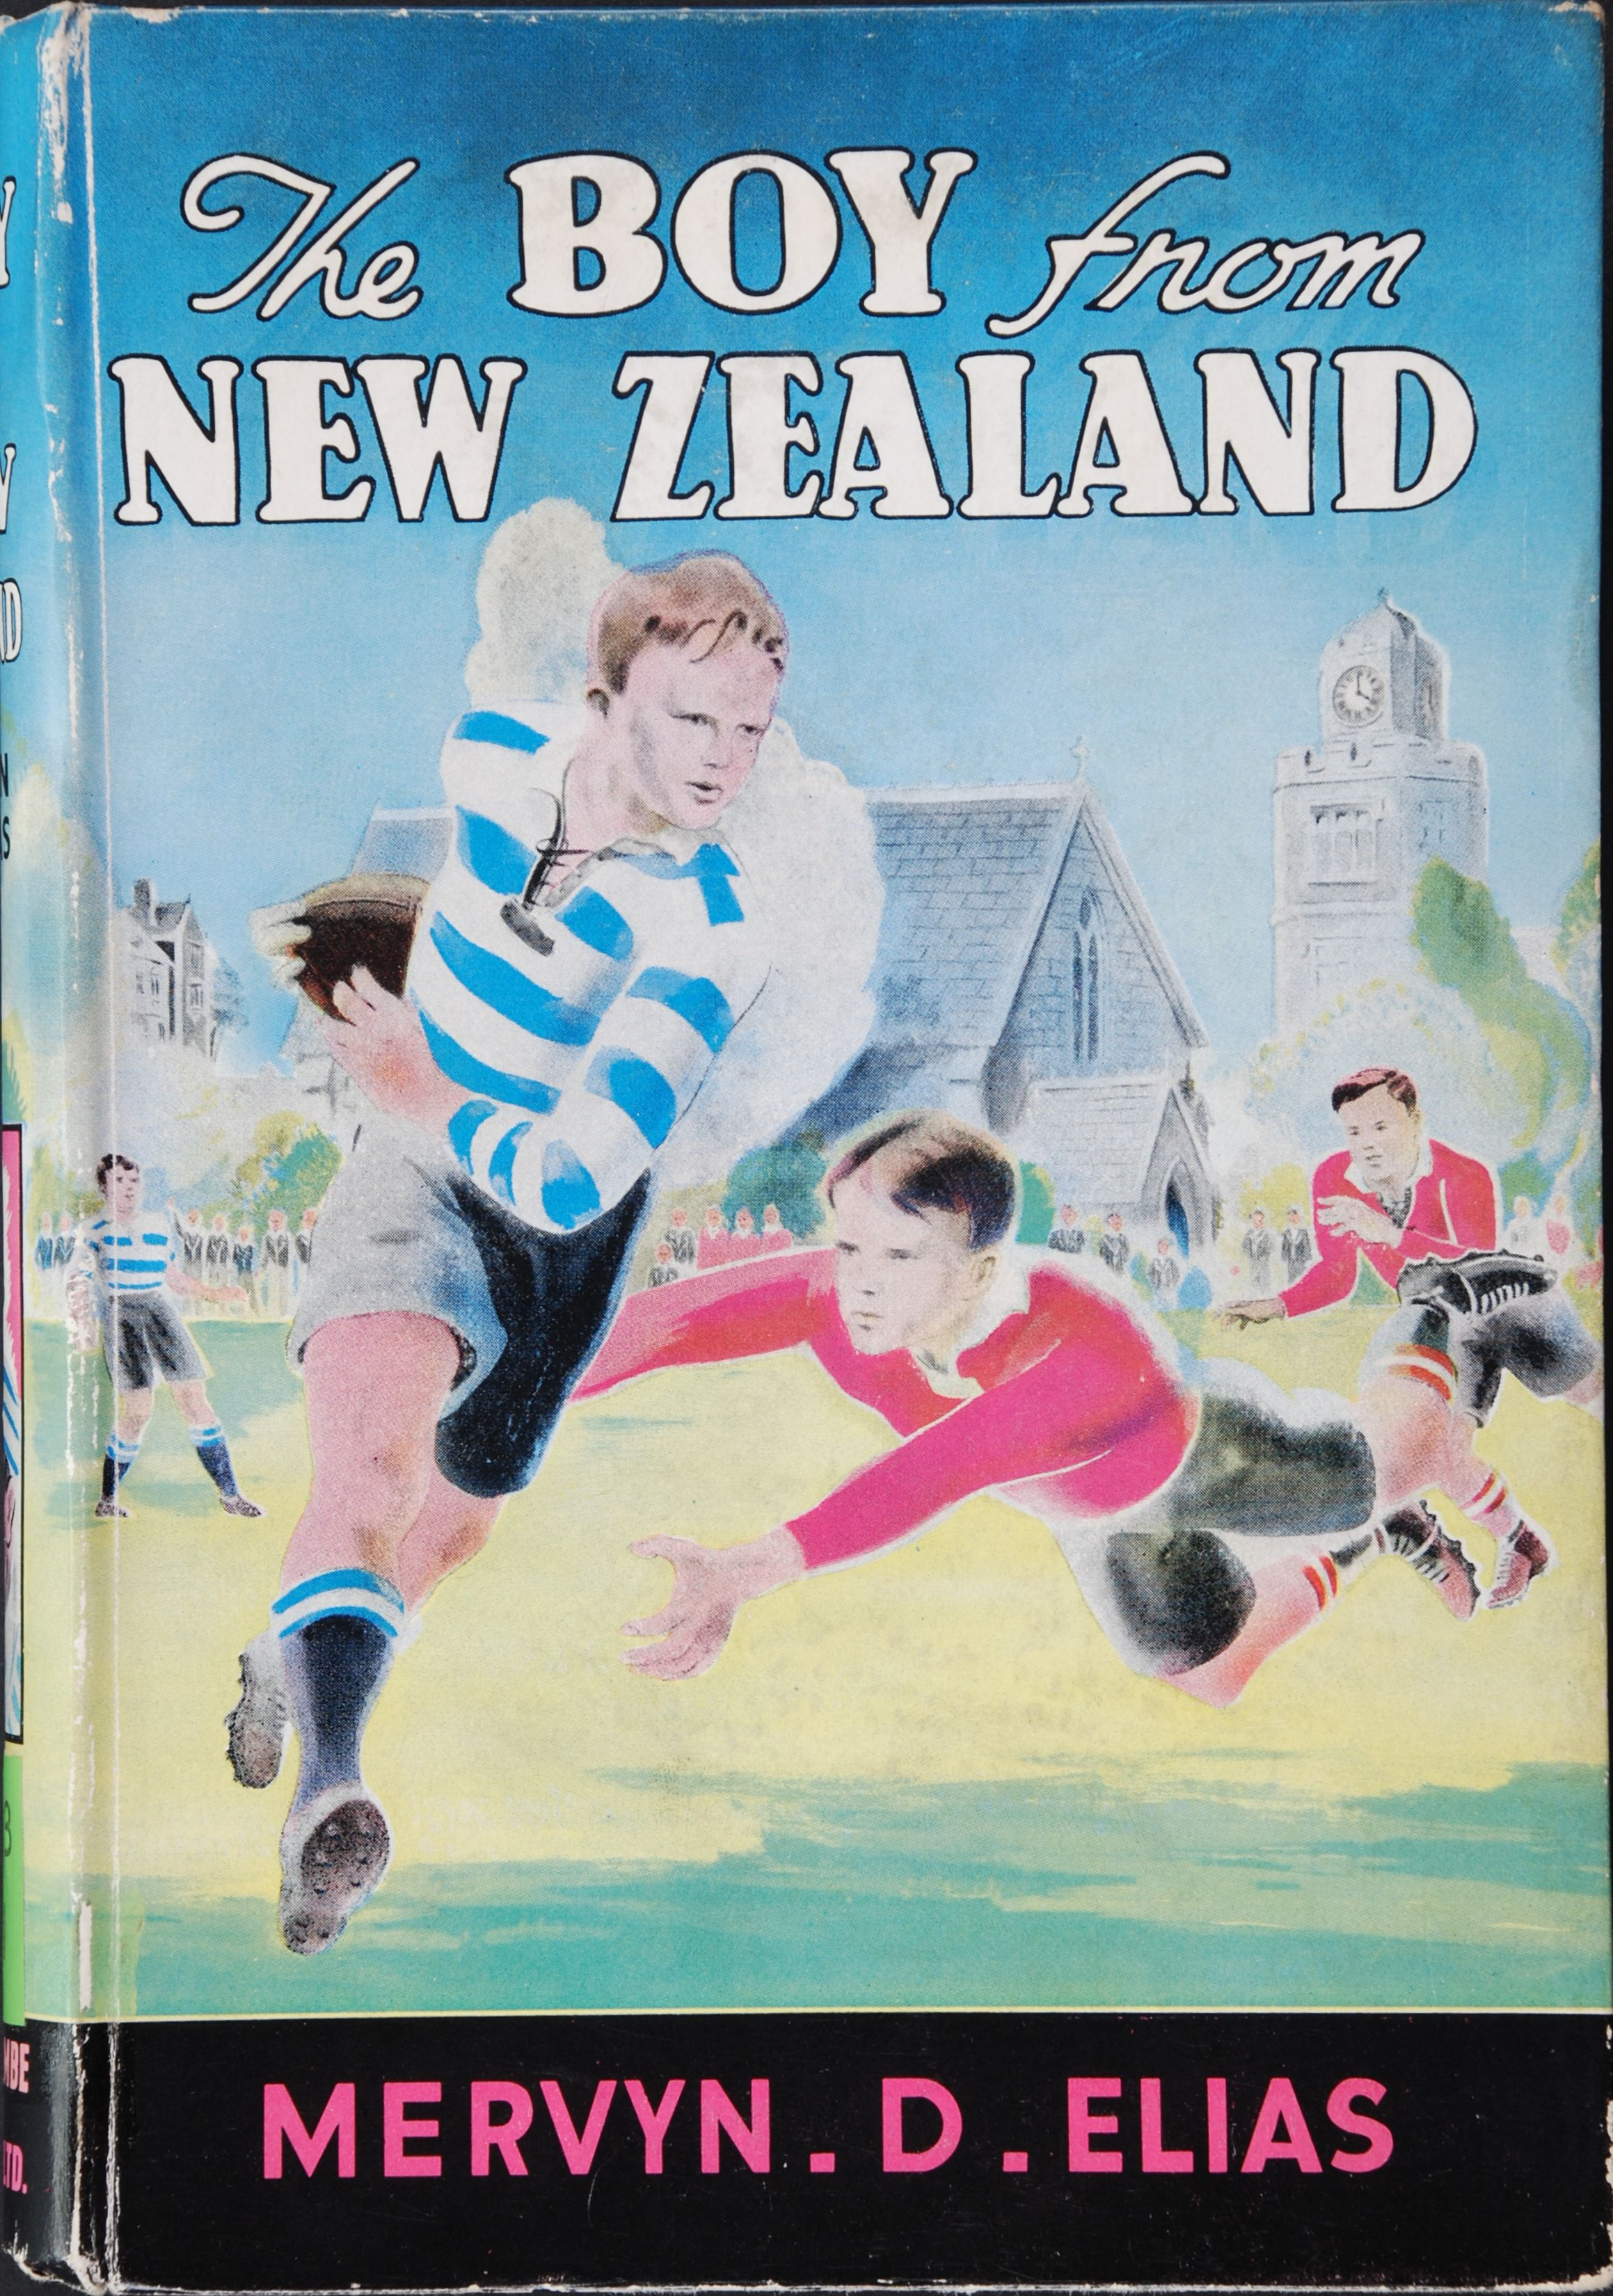 Mervyn D. Elias. The boy from New Zealand : the story of a New Zealand boy at an English public school. Christchurch, N.Z.: Whitcombe & Tombs, [1940].